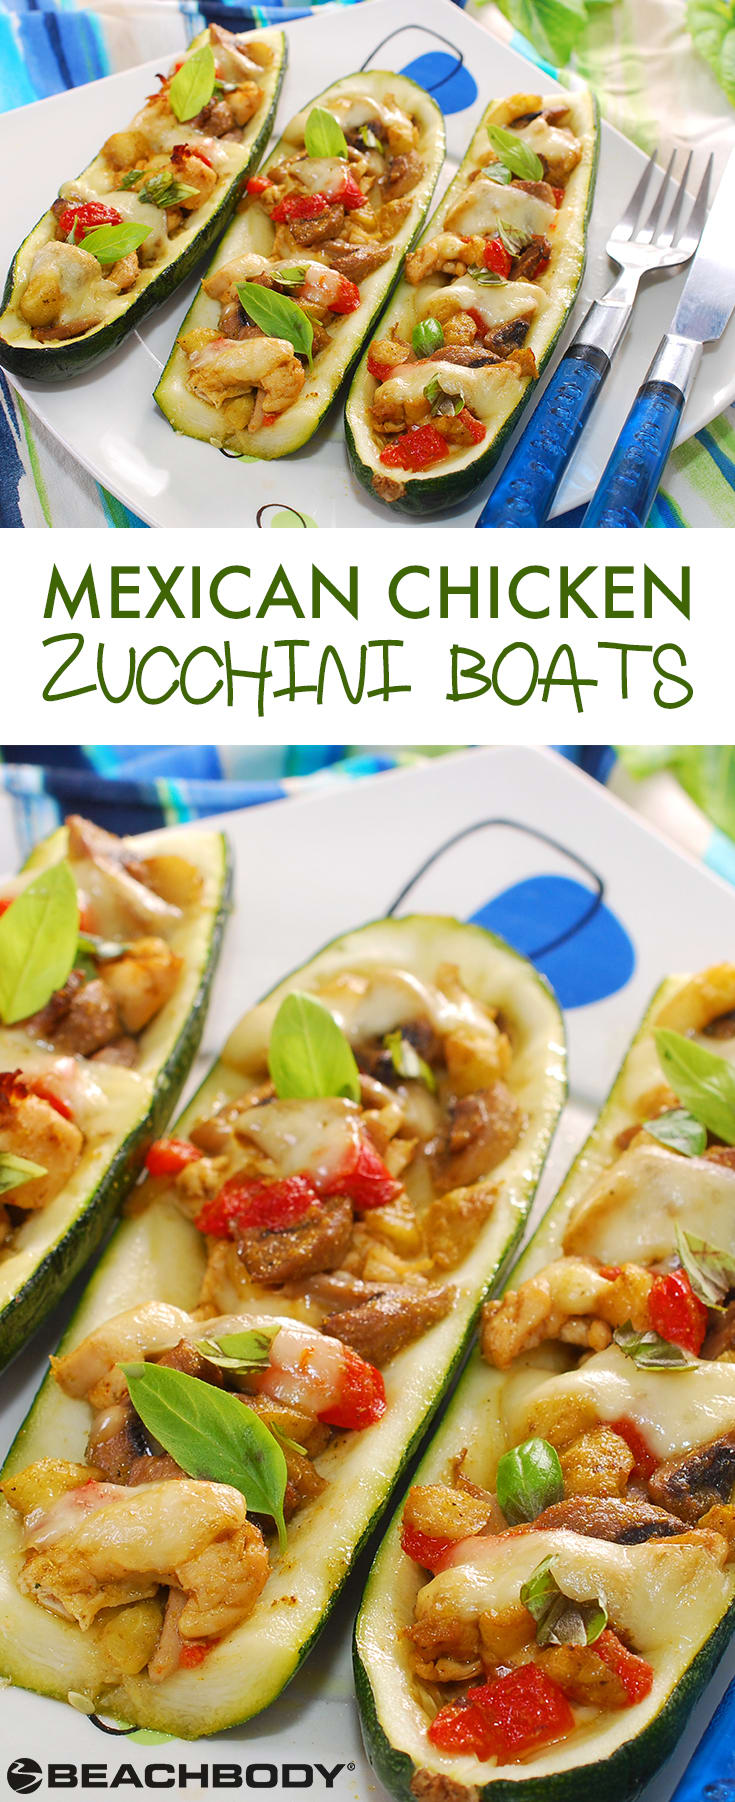 Mexican Chicken Zucchini Boats | BeachbodyBlog.com